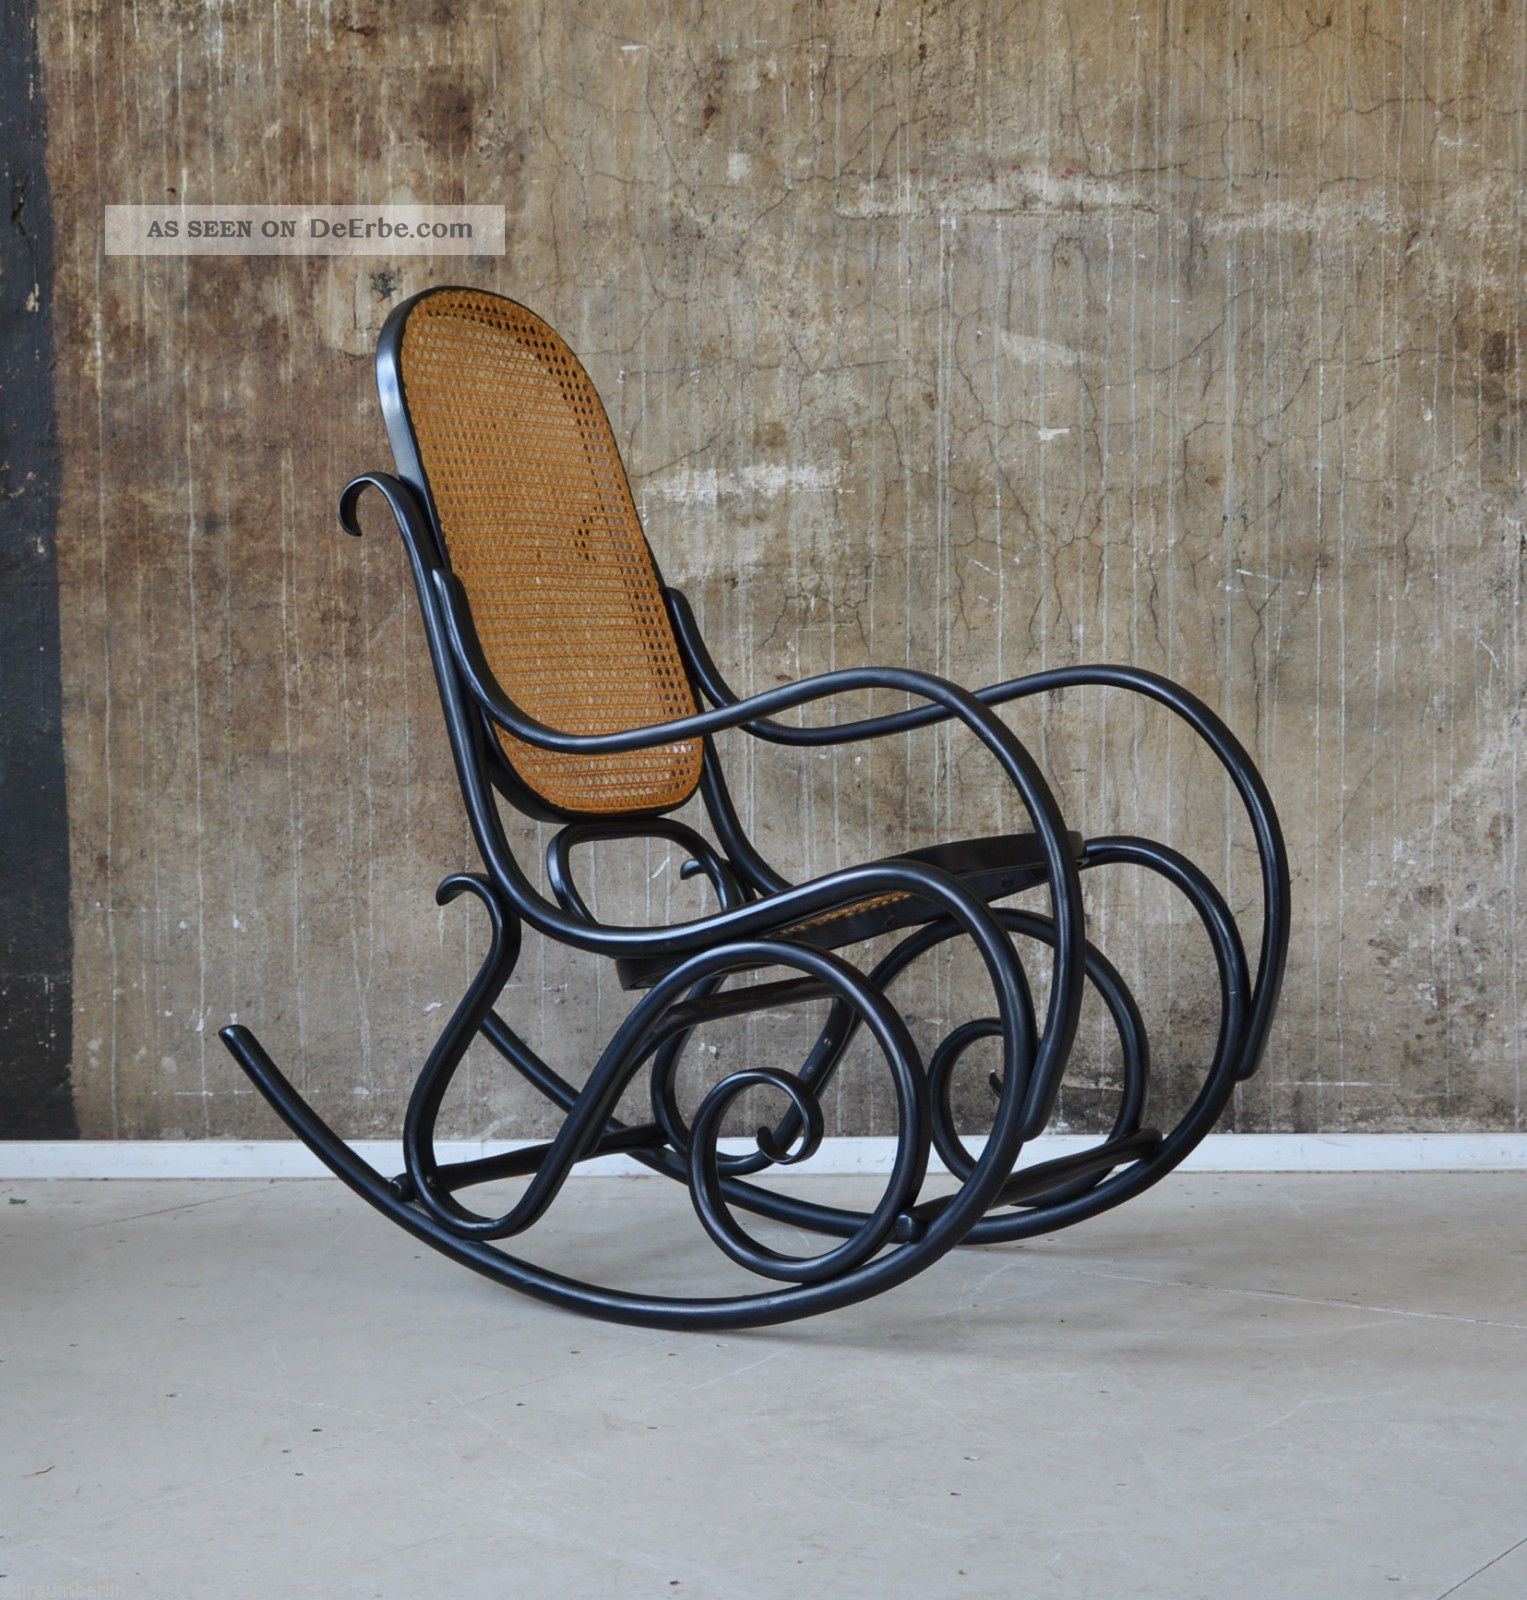 Thonet schaukelstuhl bugholz rocking chair michael thonet for Schaukelstuhl thonet